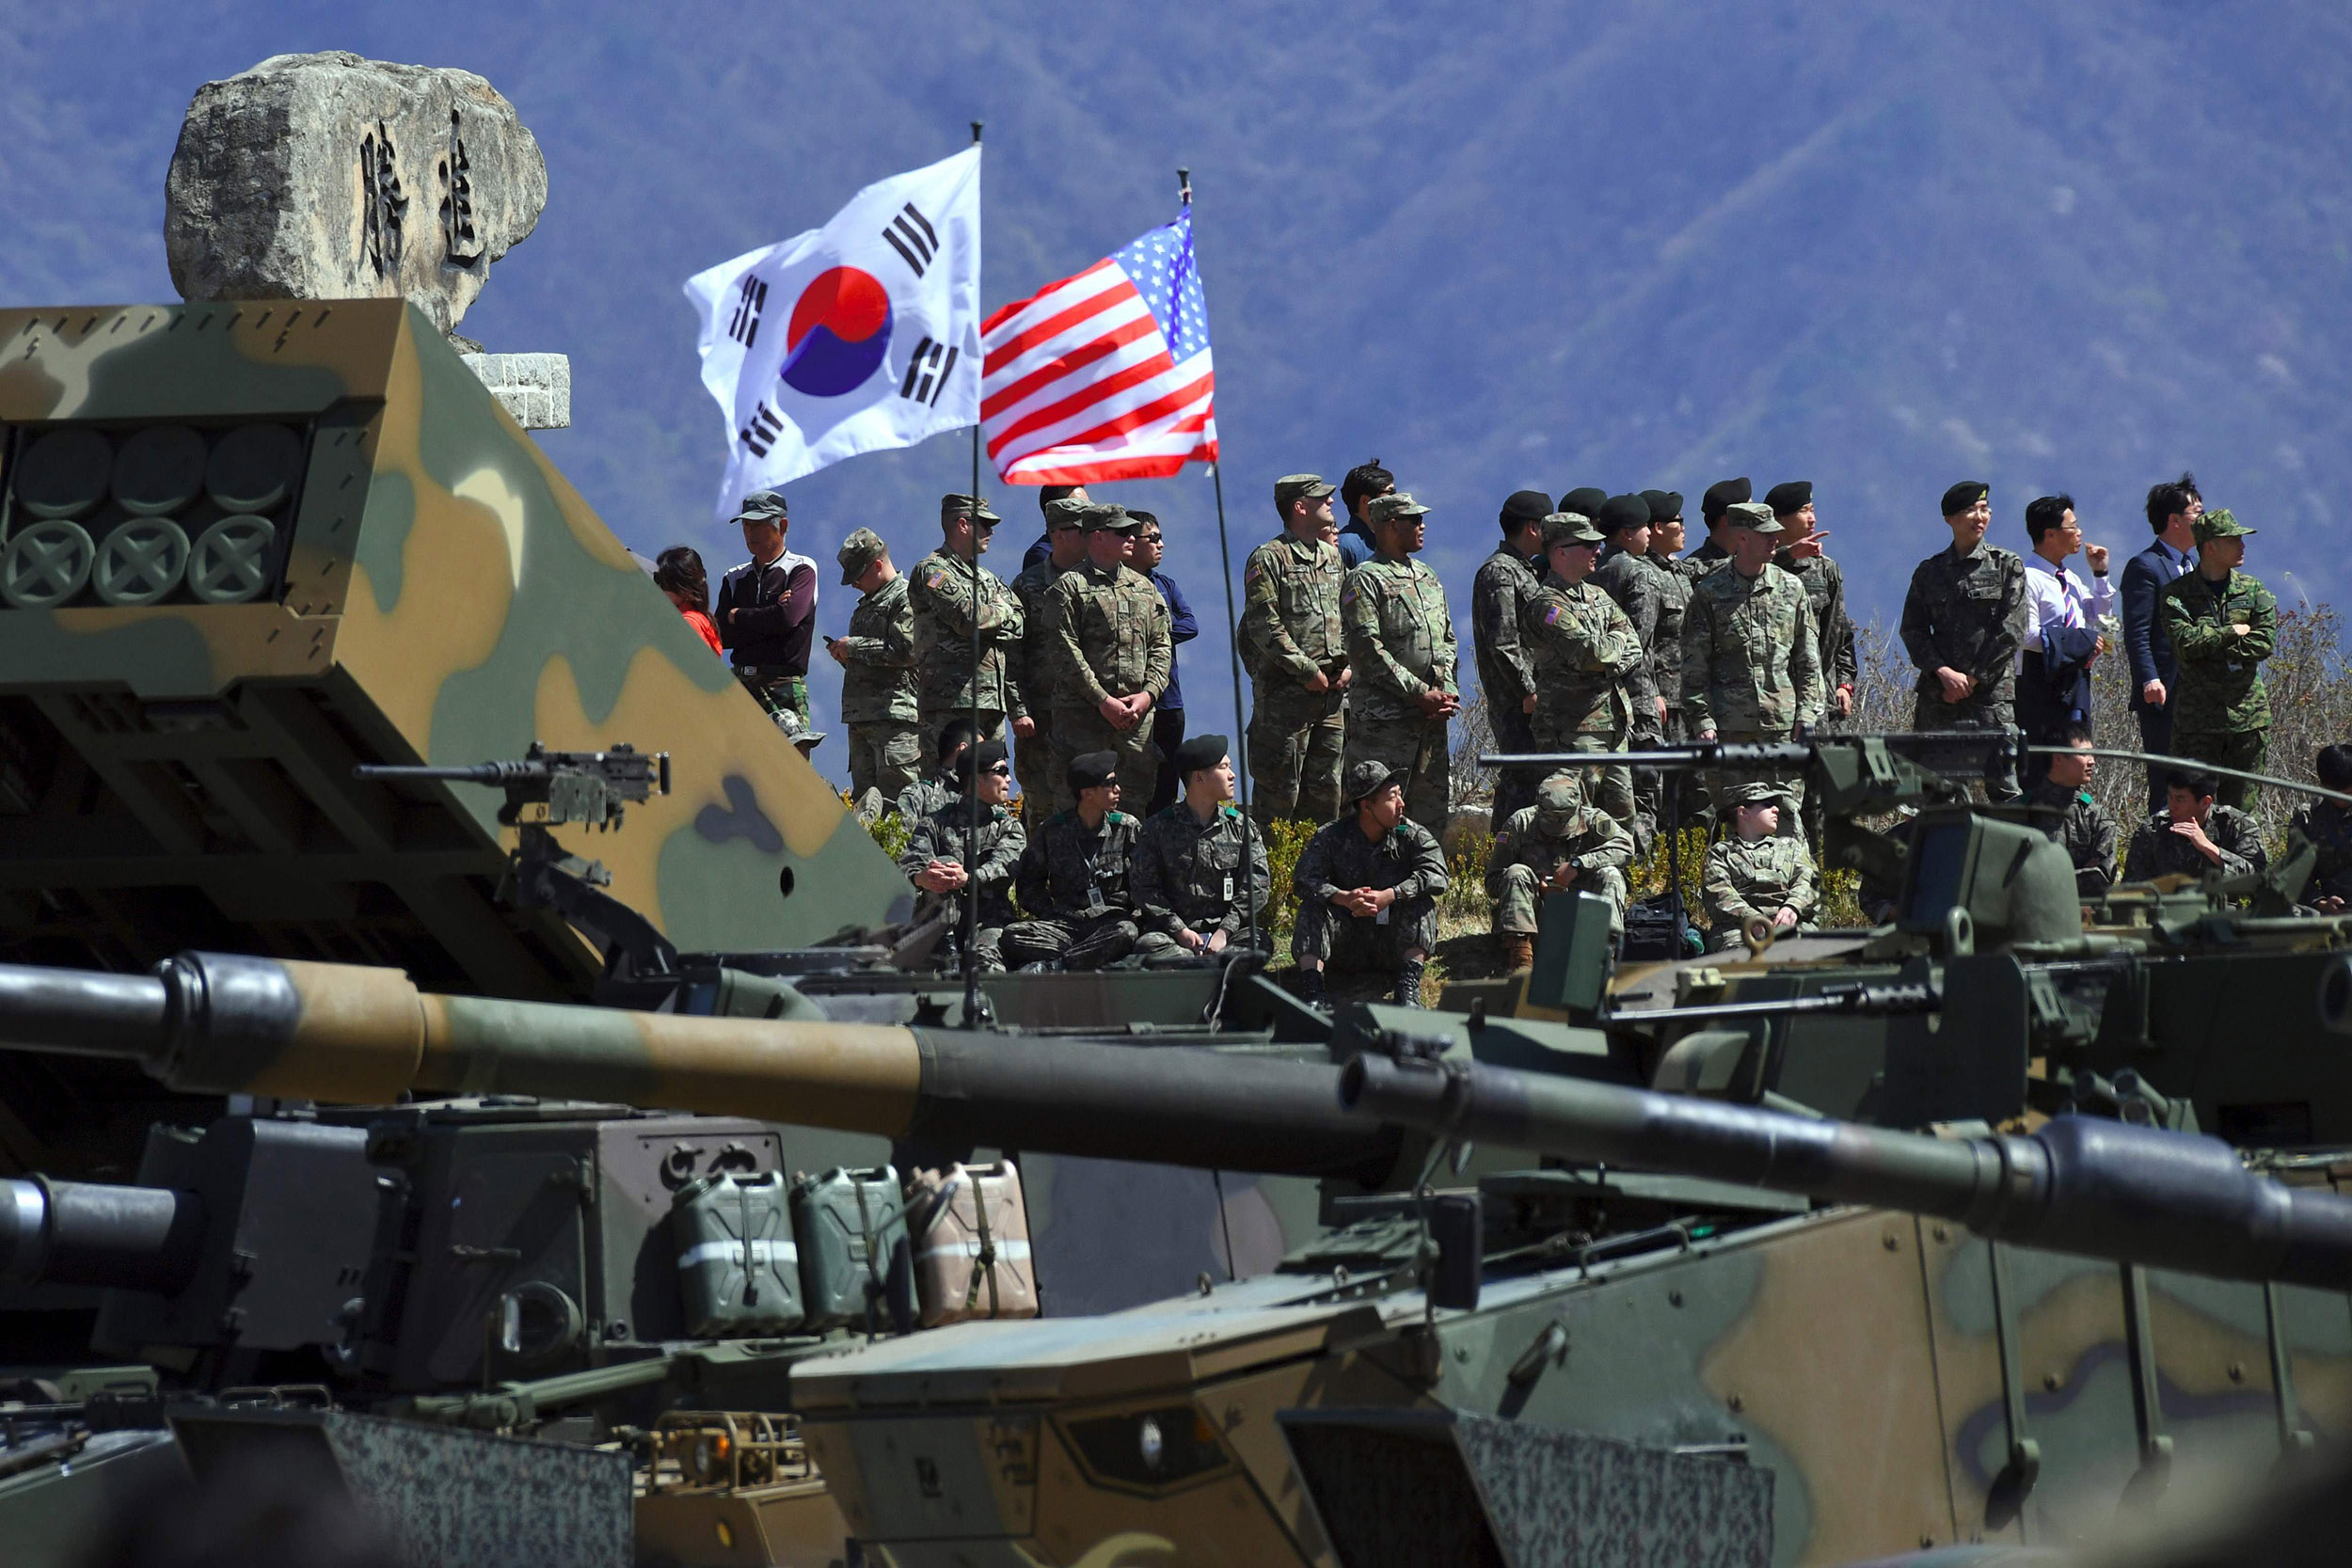 'Perfidious' and 'hostile': North Korea hits out over South-U.S. military drills